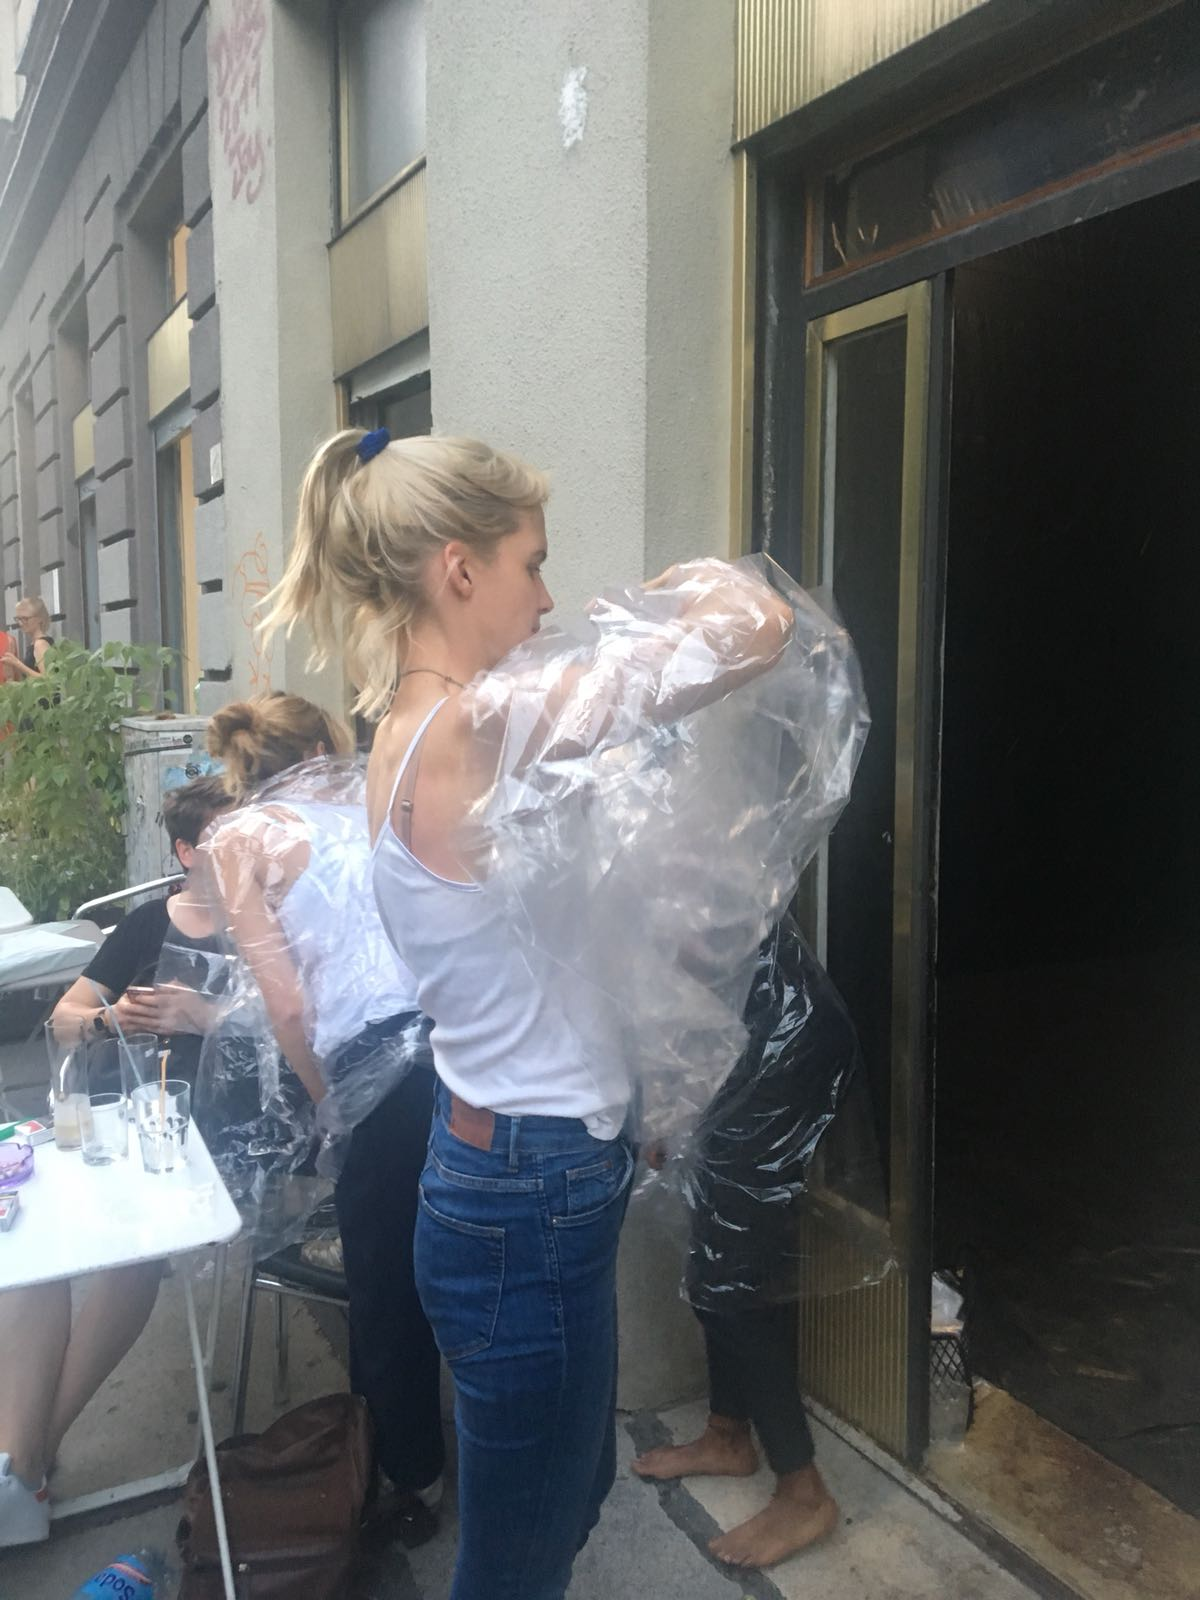 Performance Sanja Velickovic, Intersections #1, 20.6.2018, Galerie Kunstbüro